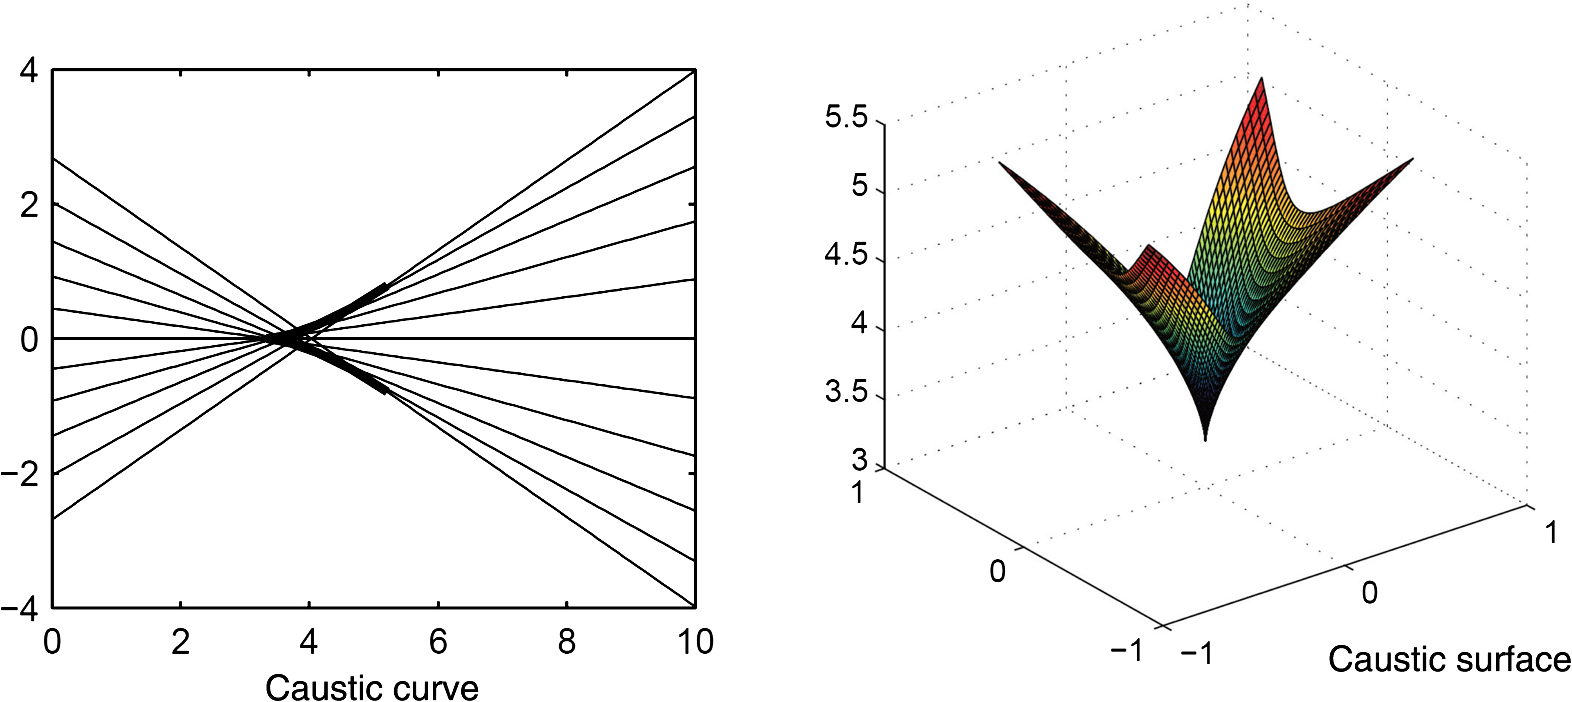 Plate refractive camera model and its applications the caustic curve and caustic surface generated from a plate and the rays emitting for an image the creation of caustic curve and caustic surface fandeluxe Image collections